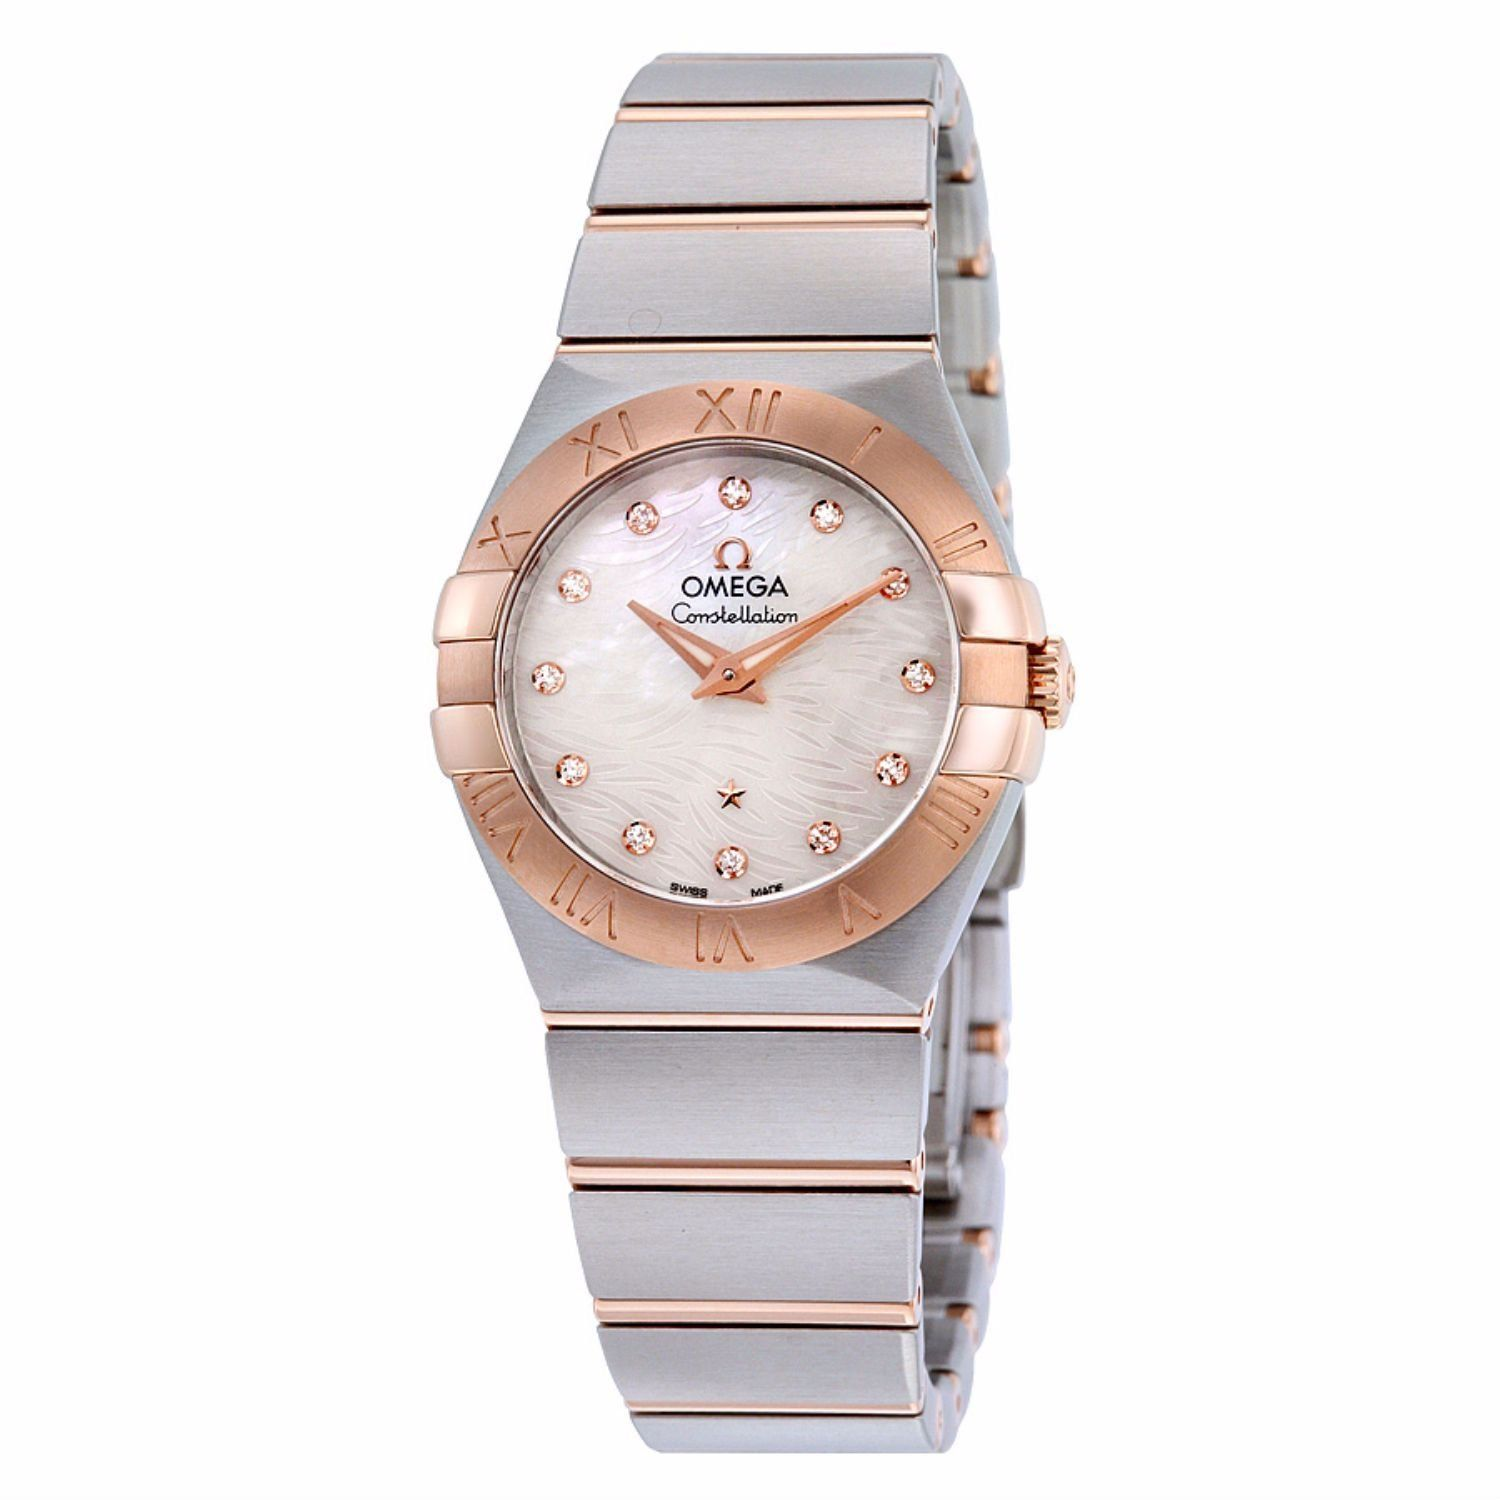 Omega Women's 'Constellation' Swiss Quartz Stainless Steel Dress Watch, Color:Two Tone (Model: 12320276055007). Brushed finished stainless steel case with polished finished 18kt Rose gold bezel & crown with a stainless steel bracelet with 18K Rose gold Links. Mother-of-pearl dial decorated with a wavy pattern that flows between the iconic claws. The dial is complete with 12 diamond indexes. Swiss-quartz Movement. Case Diameter: 27mm. Water Resistant To 100m (330ft): In General, Suitable…